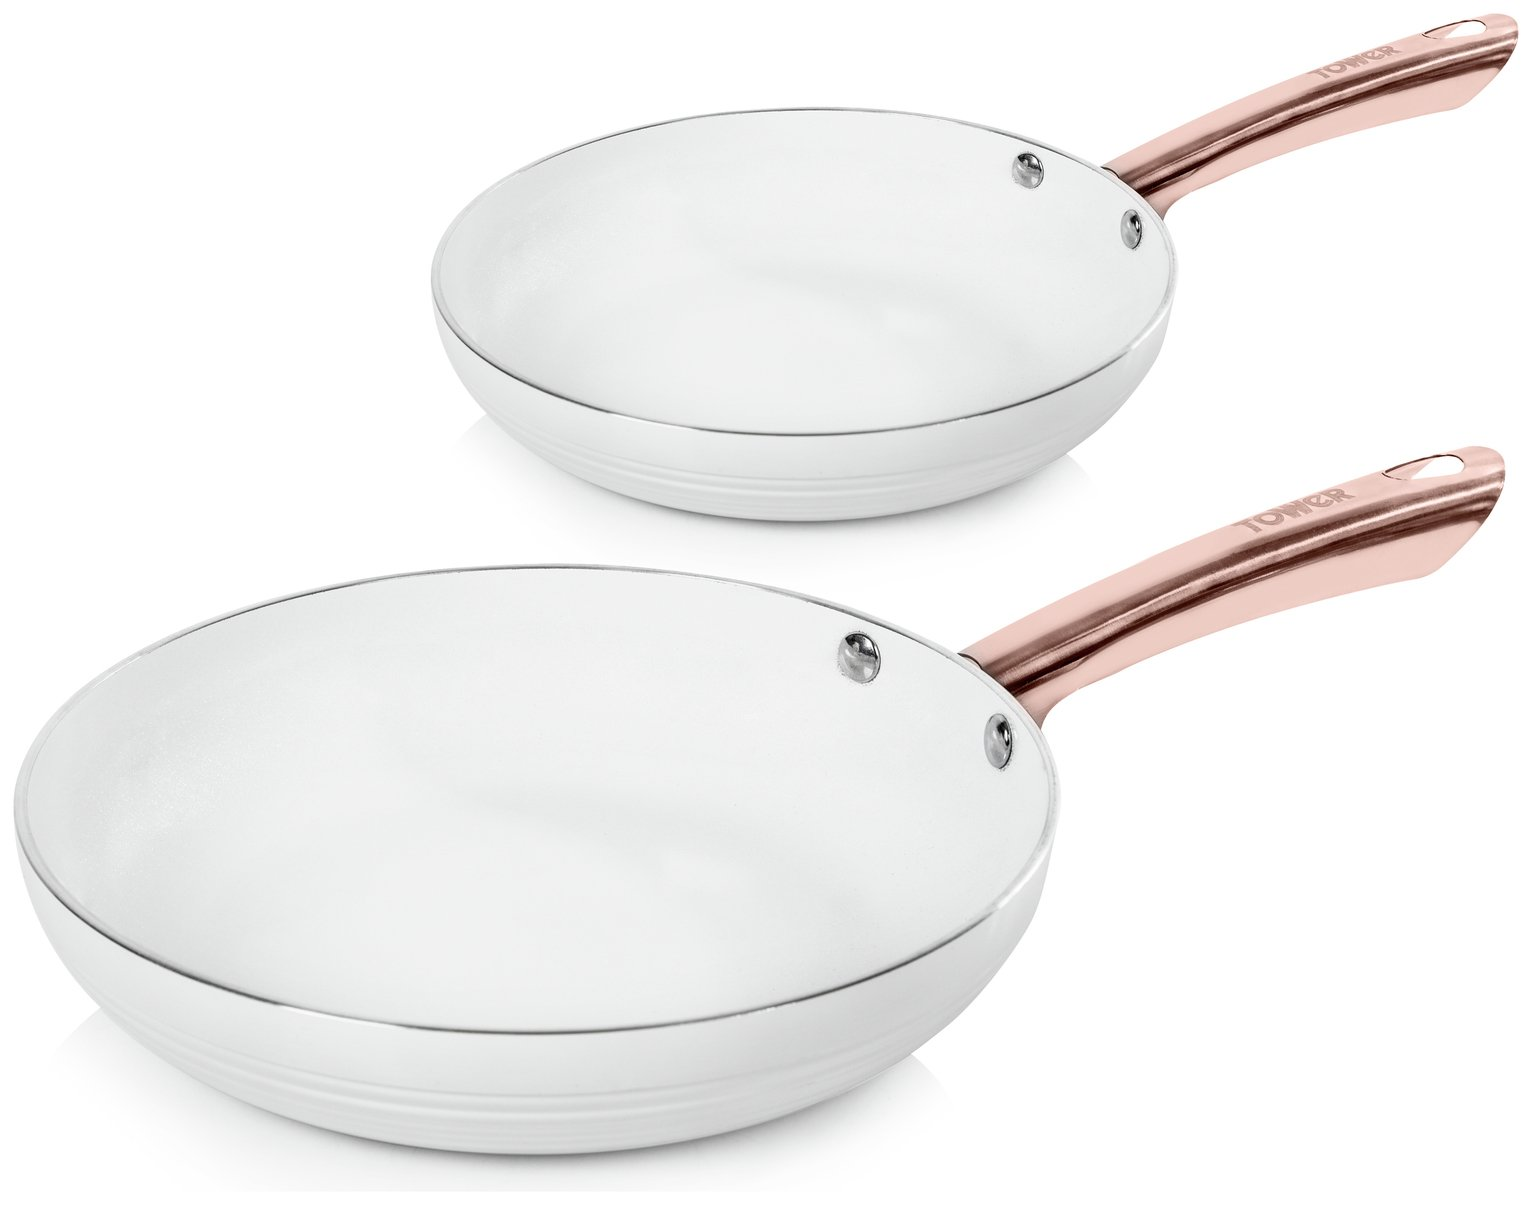 Tower Linear 2 Piece Pan Set - White and Rose Gold